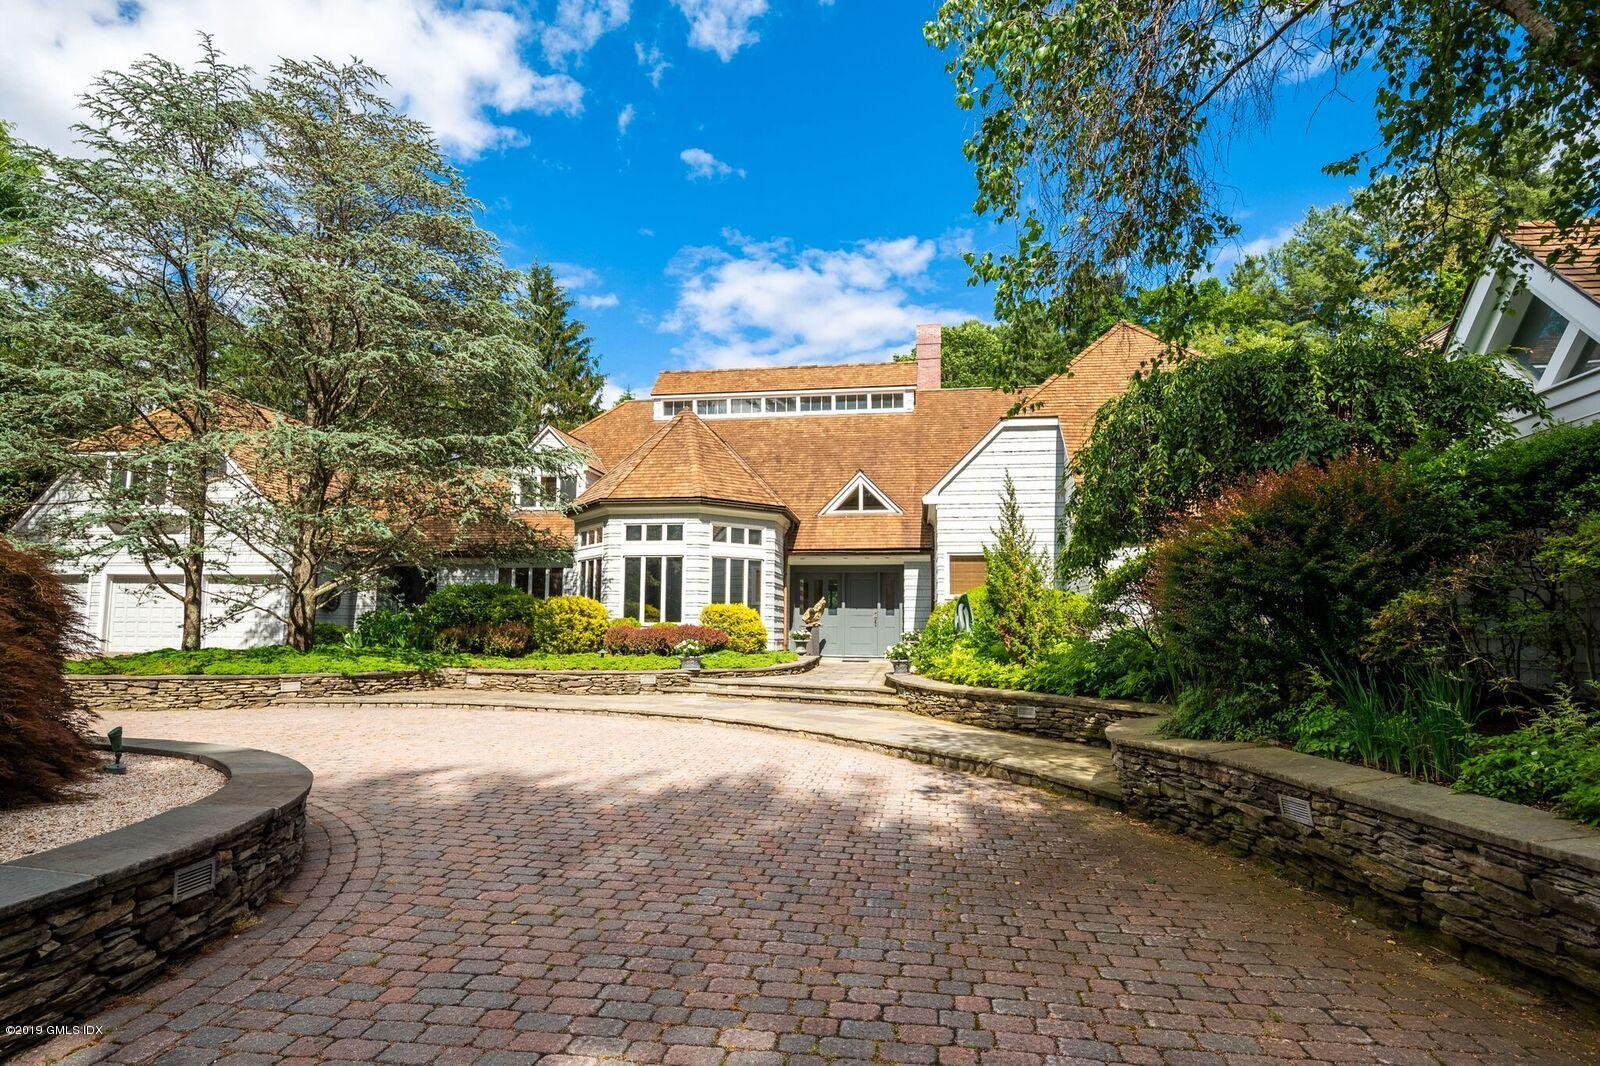 183 Round Hill Road,Greenwich,Connecticut 06831,6 Bedrooms Bedrooms,4 BathroomsBathrooms,Single family,Round Hill,108634